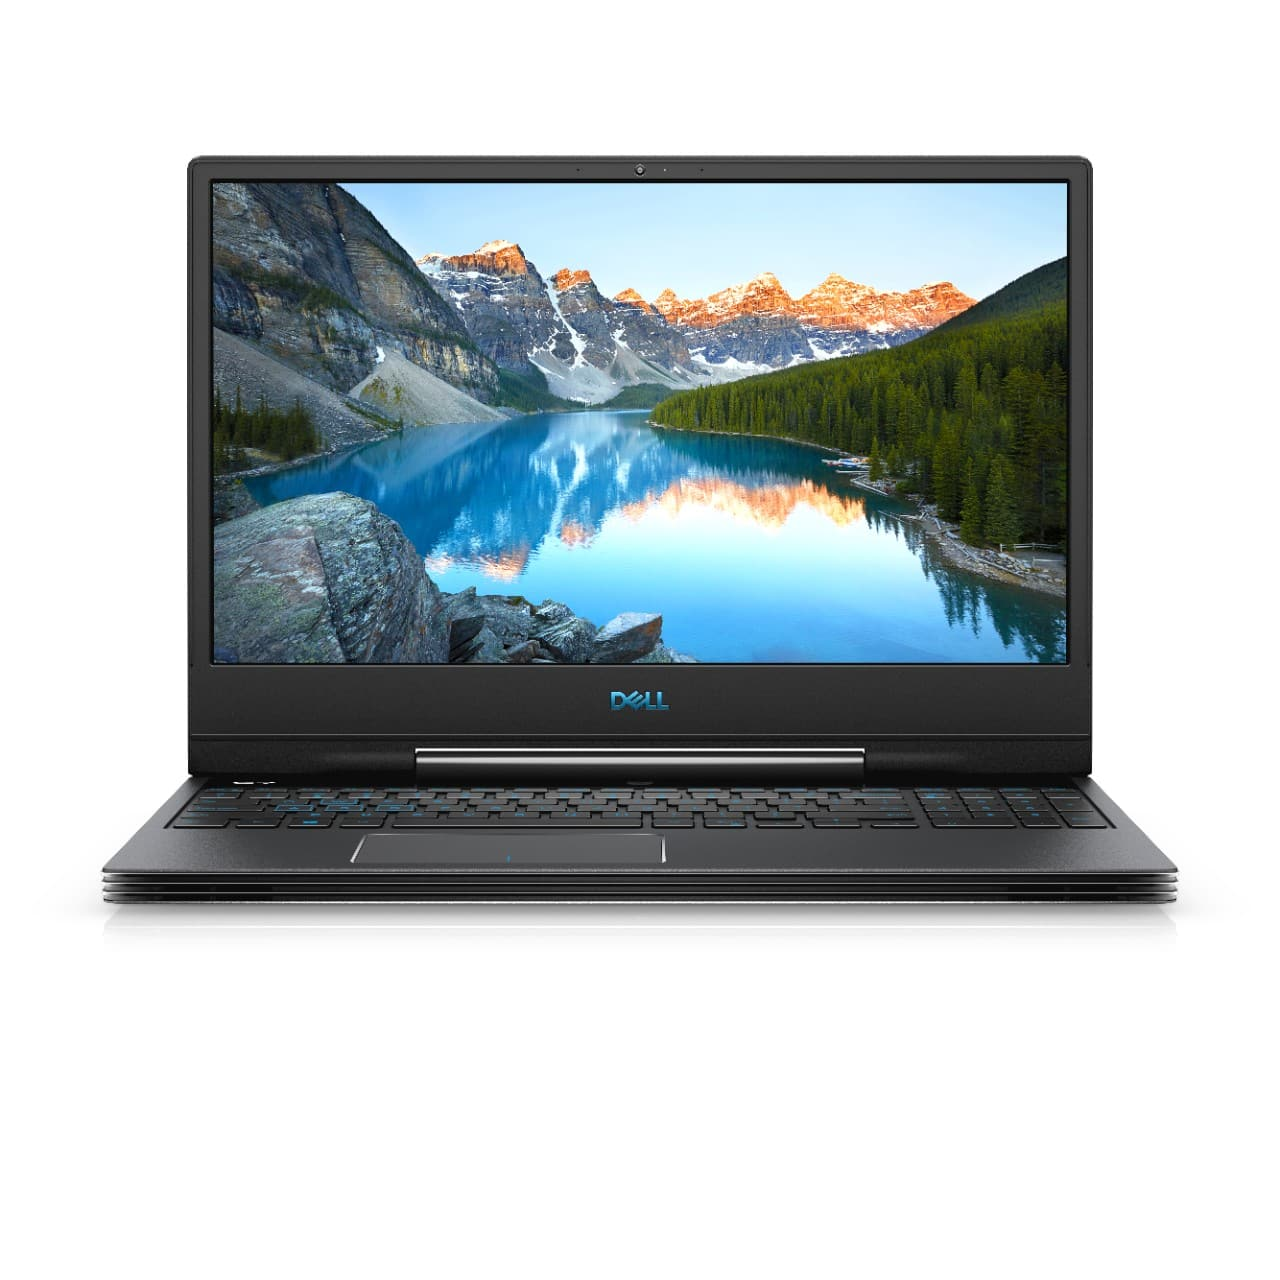 Dell G7 Gaming Laptop + $280 In Rakuten Points: 144Hz, RTX 2060, i7-9750H, 16GB, 256GB + 1TB HD for $1400